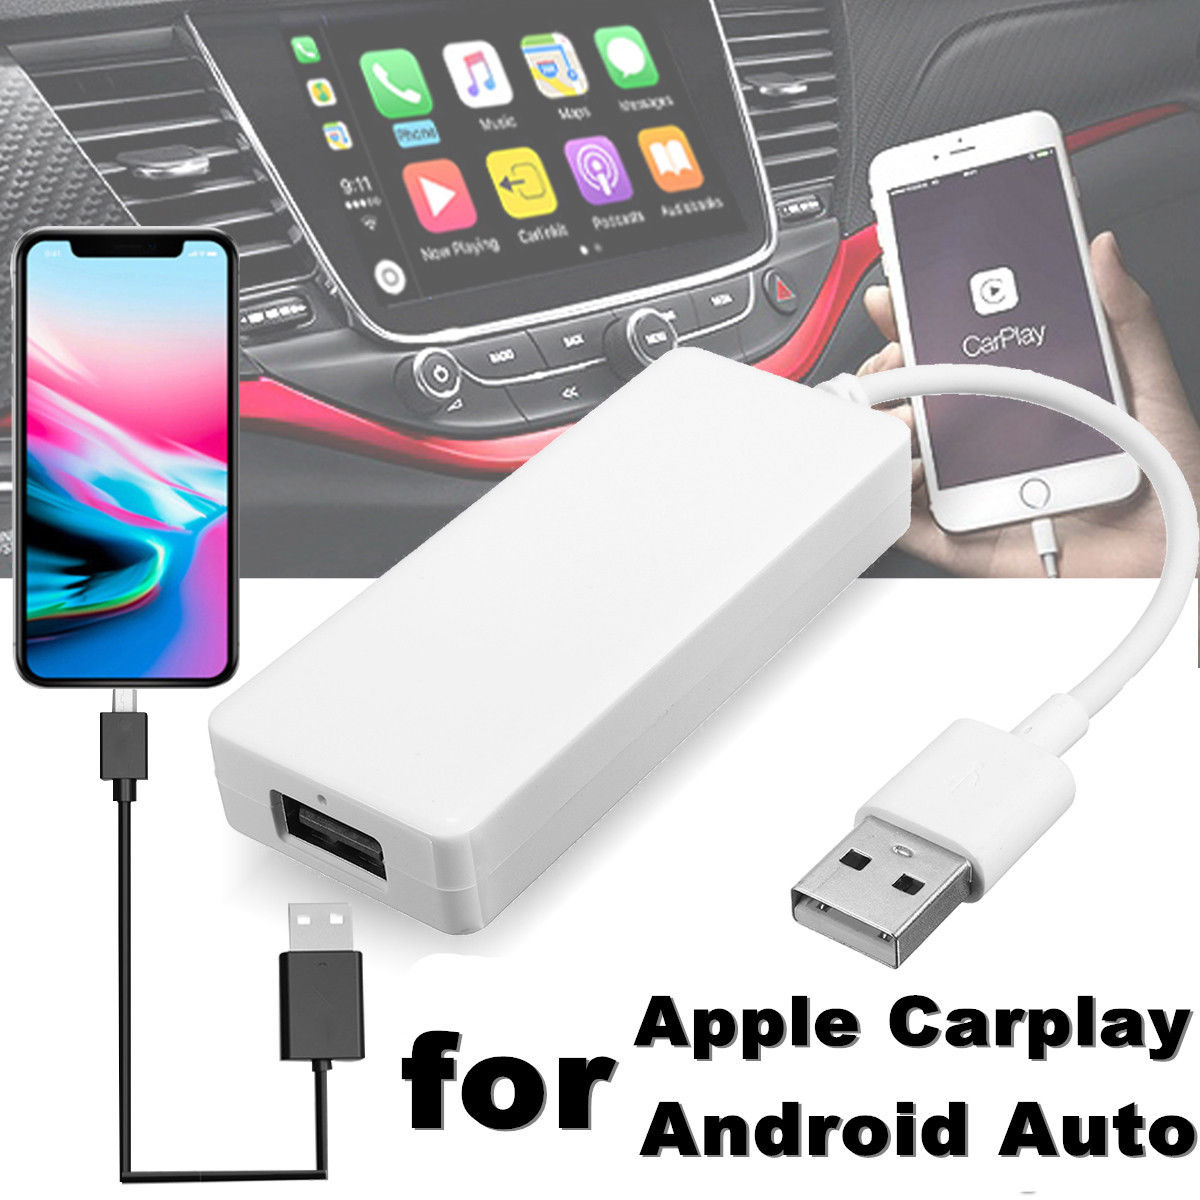 Car Link Dongle Link Dongle Universal Auto Link Dongle Navigation Player USB Dongle For Apple CarPlayCar Link Dongle Link Dongle Universal Auto Link Dongle Navigation Player USB Dongle For Apple CarPlay